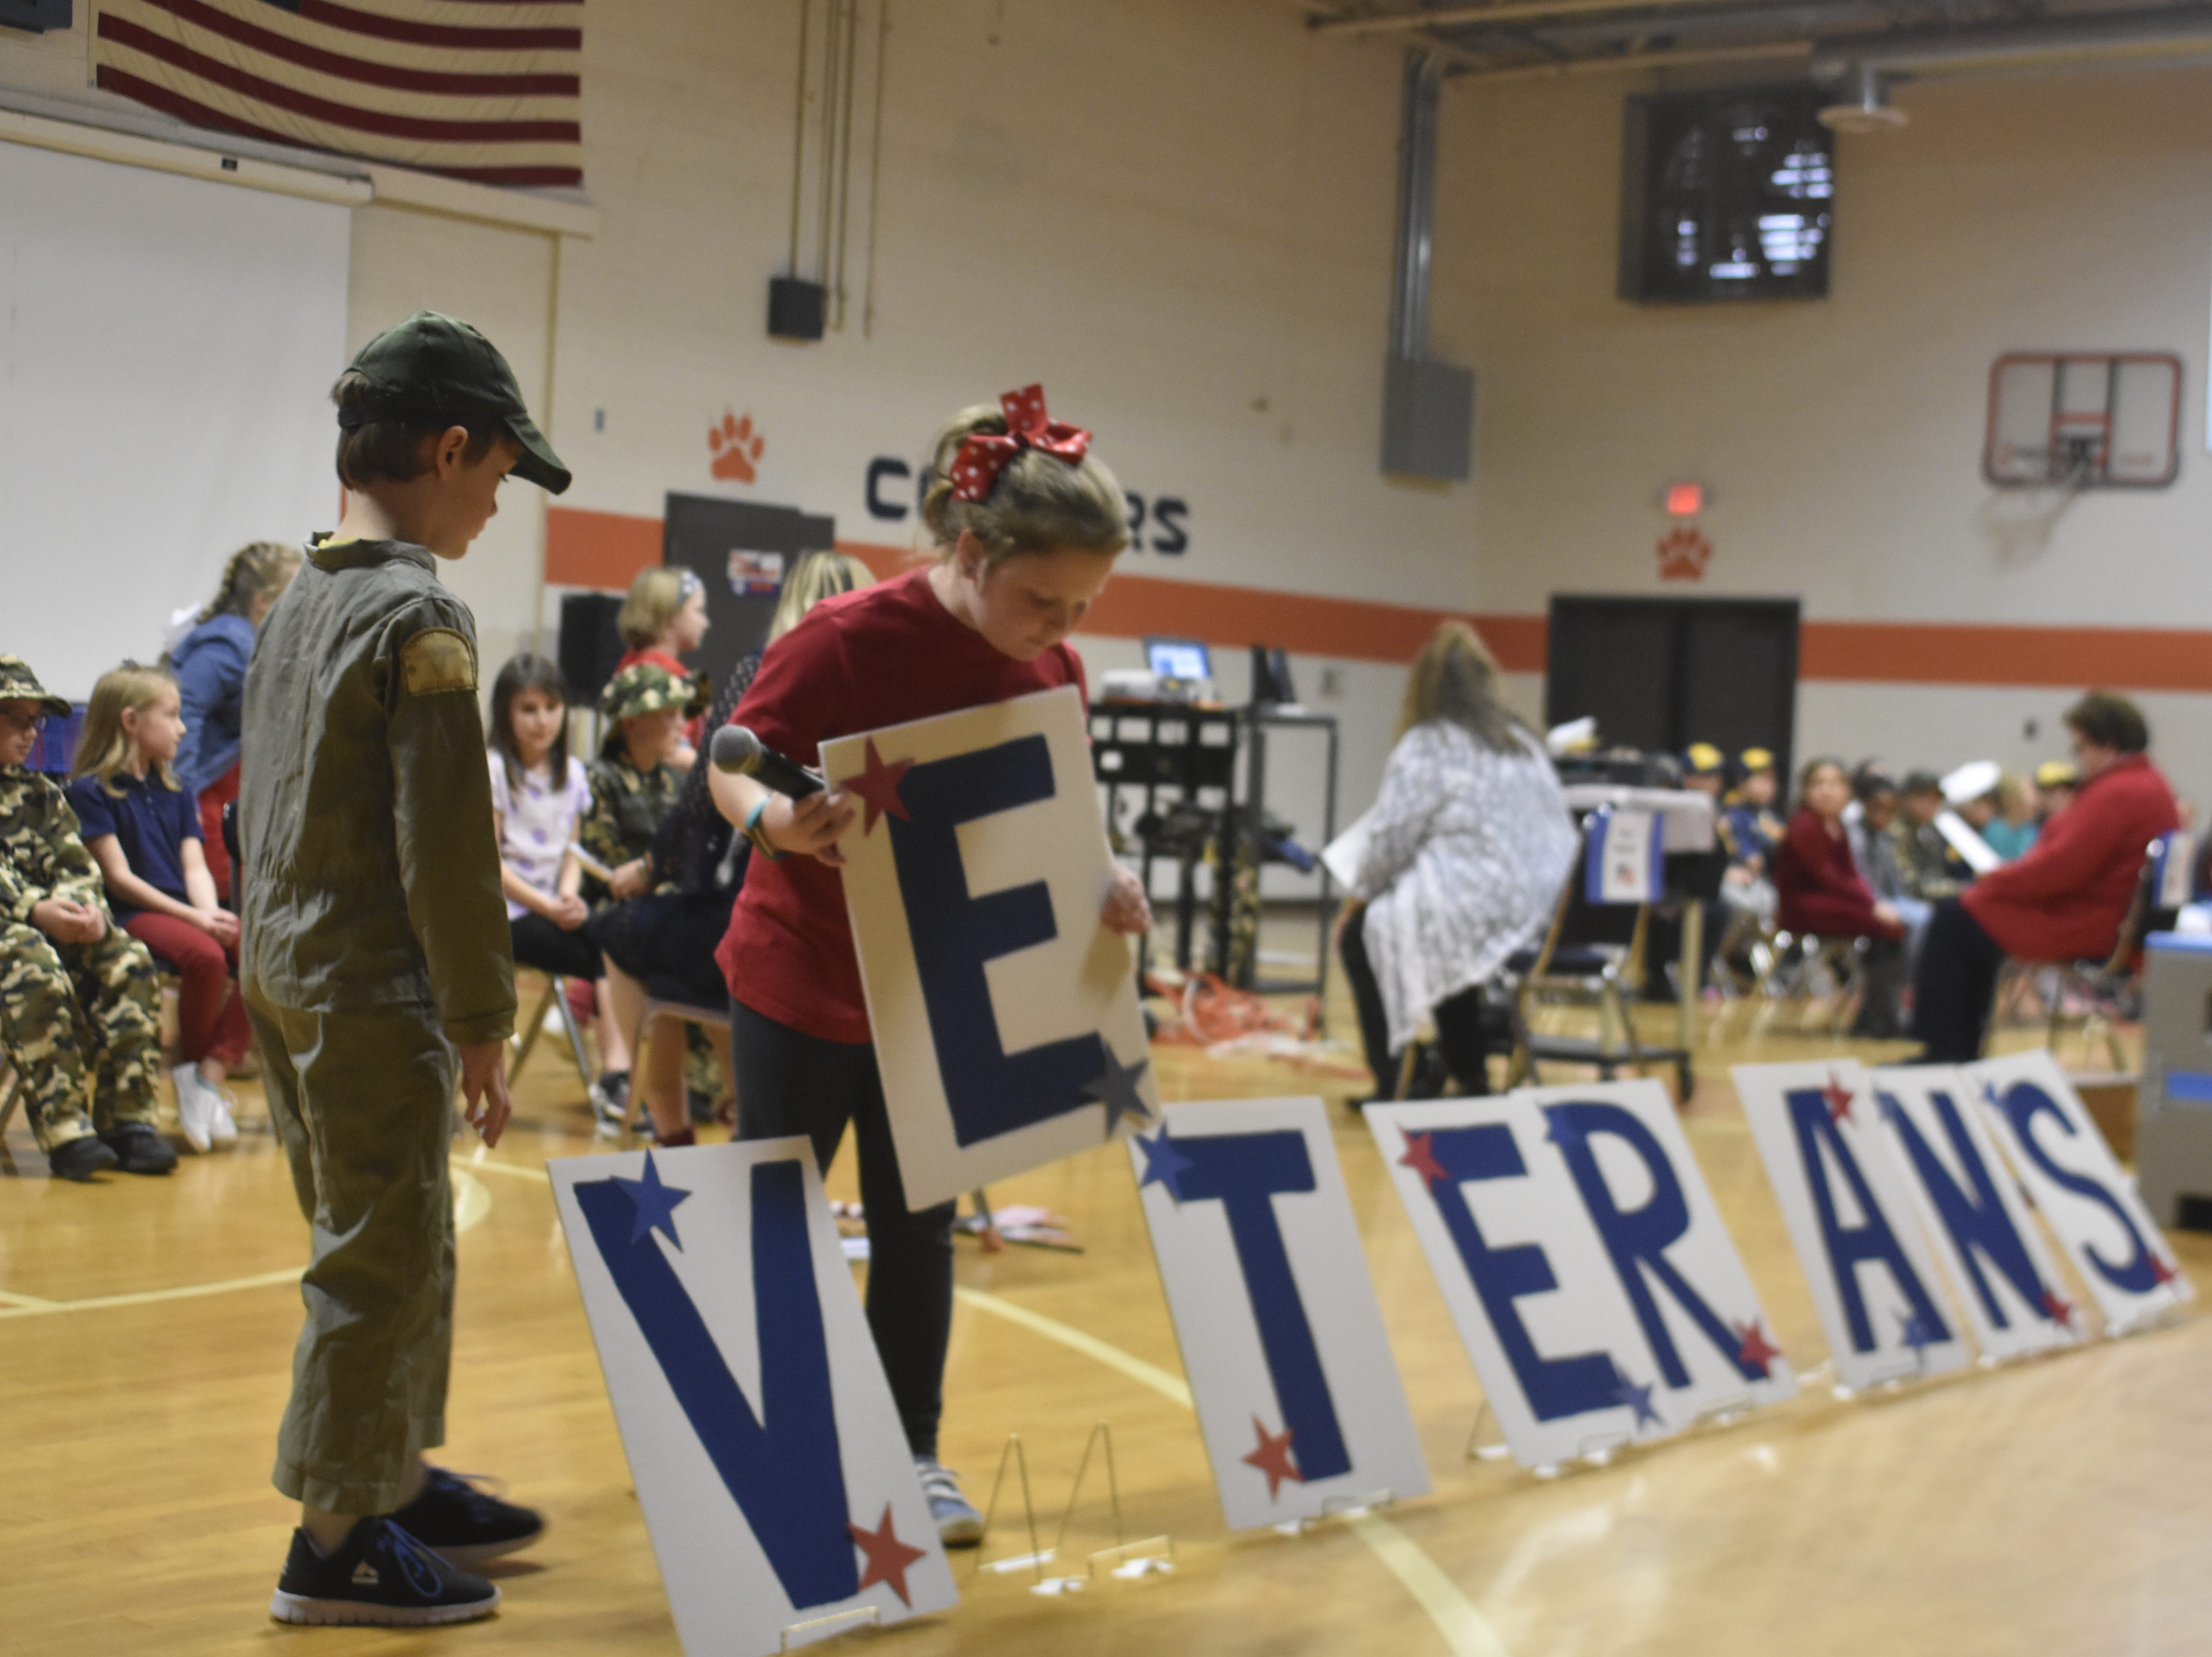 West Cheatham Elementary School's second graders performed their annual 'Thank You Veterans' program Thursday.